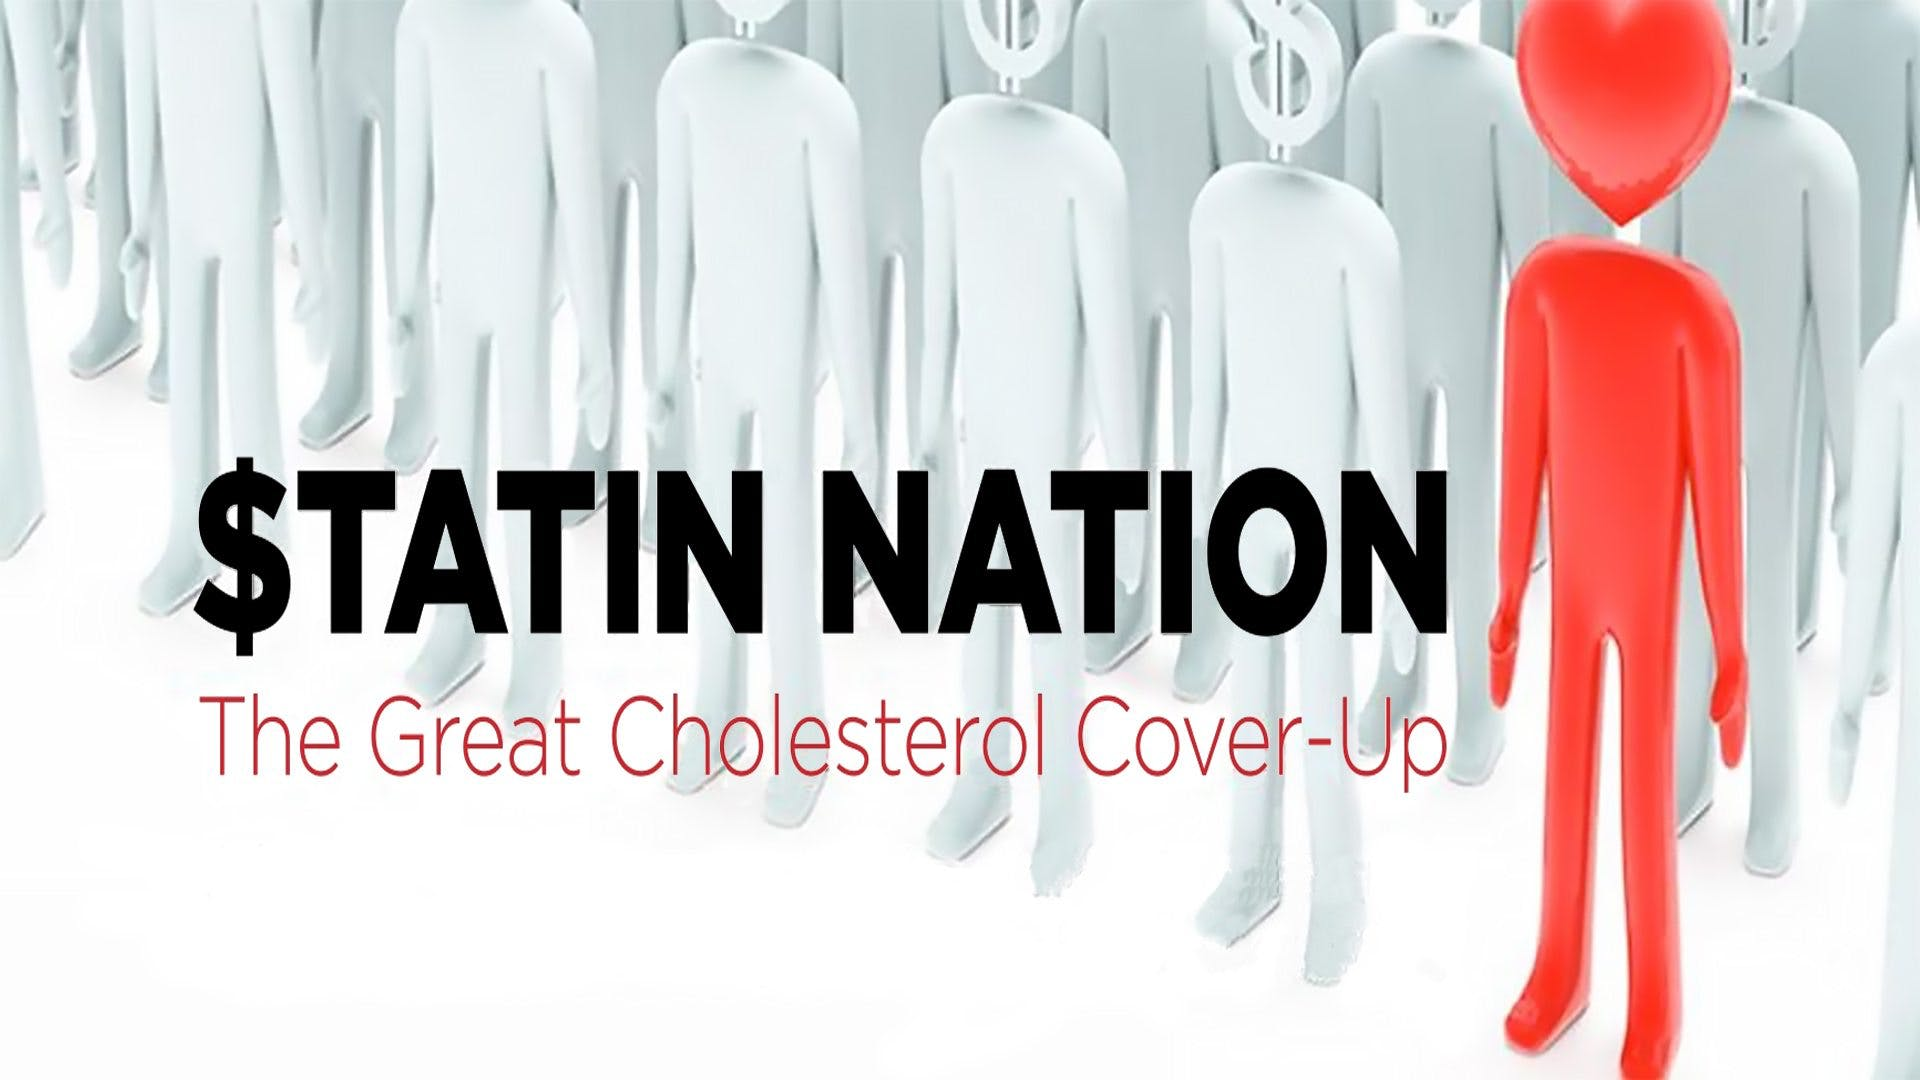 Watch the movie that exposes the cholesterol cover-up